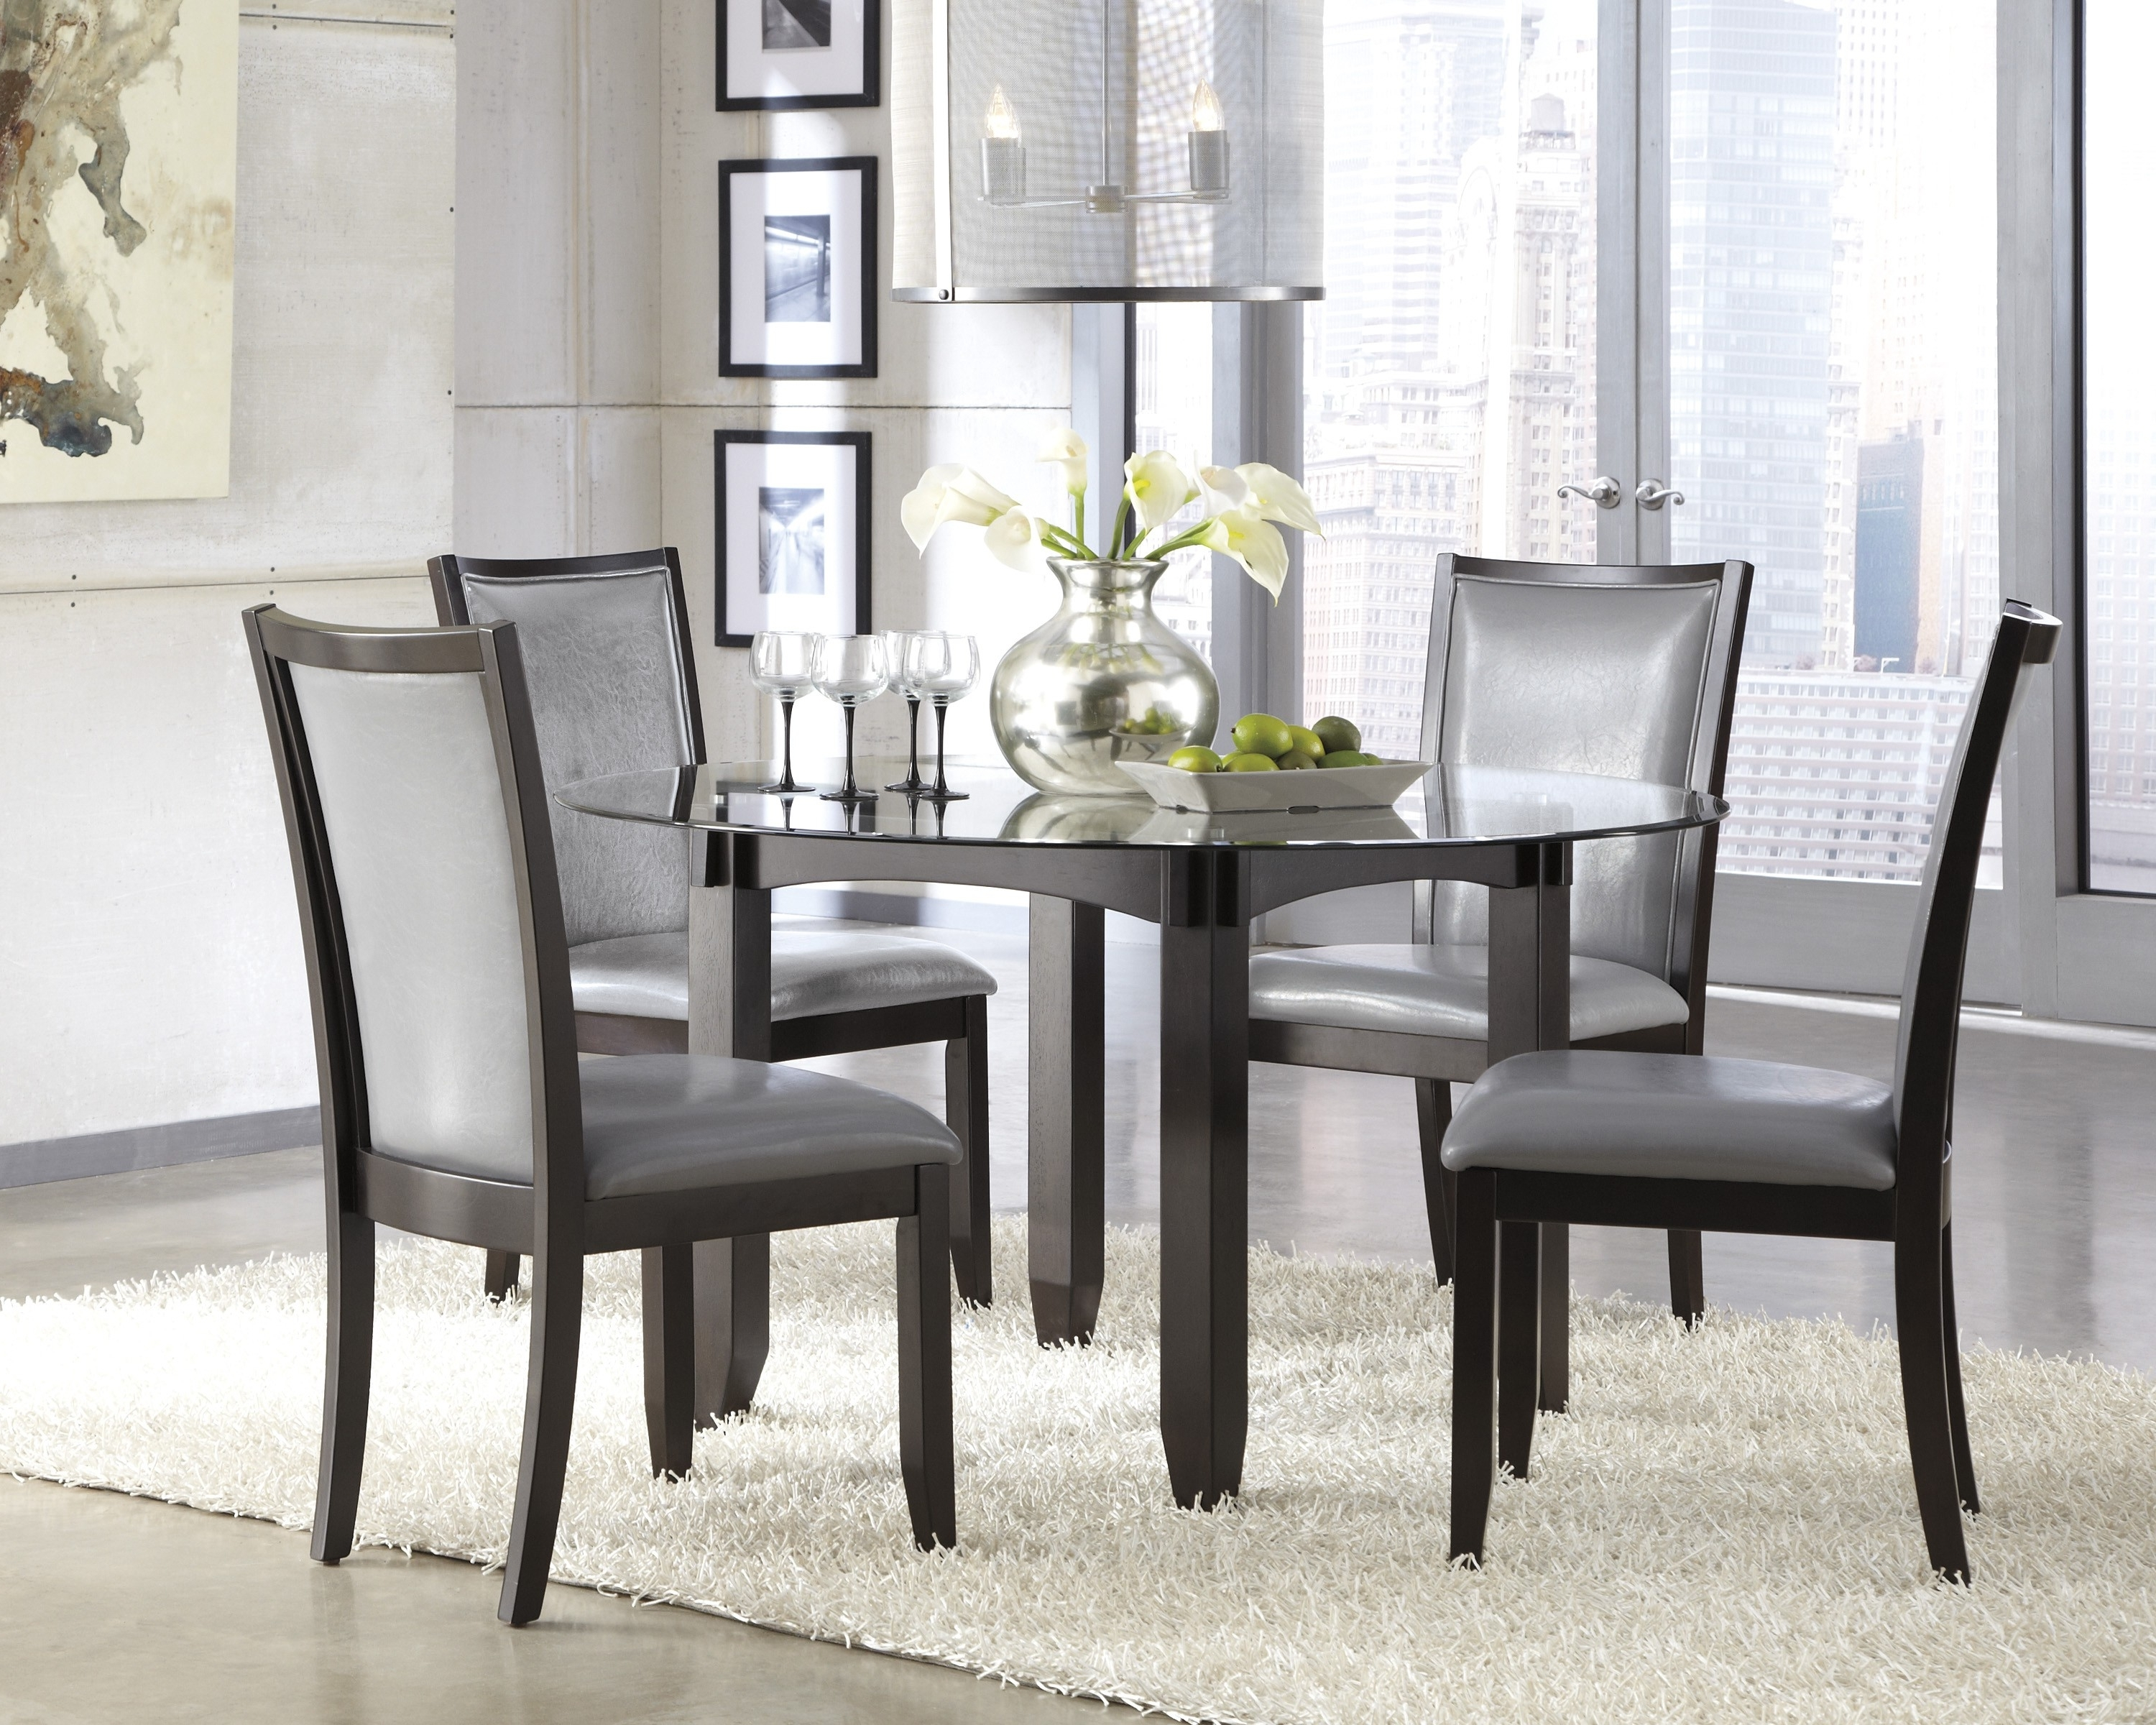 5 Round Black Dining Room Table And Chairs Furniture Ideas For Favorite Dining Room Tables And Chairs (View 2 of 25)